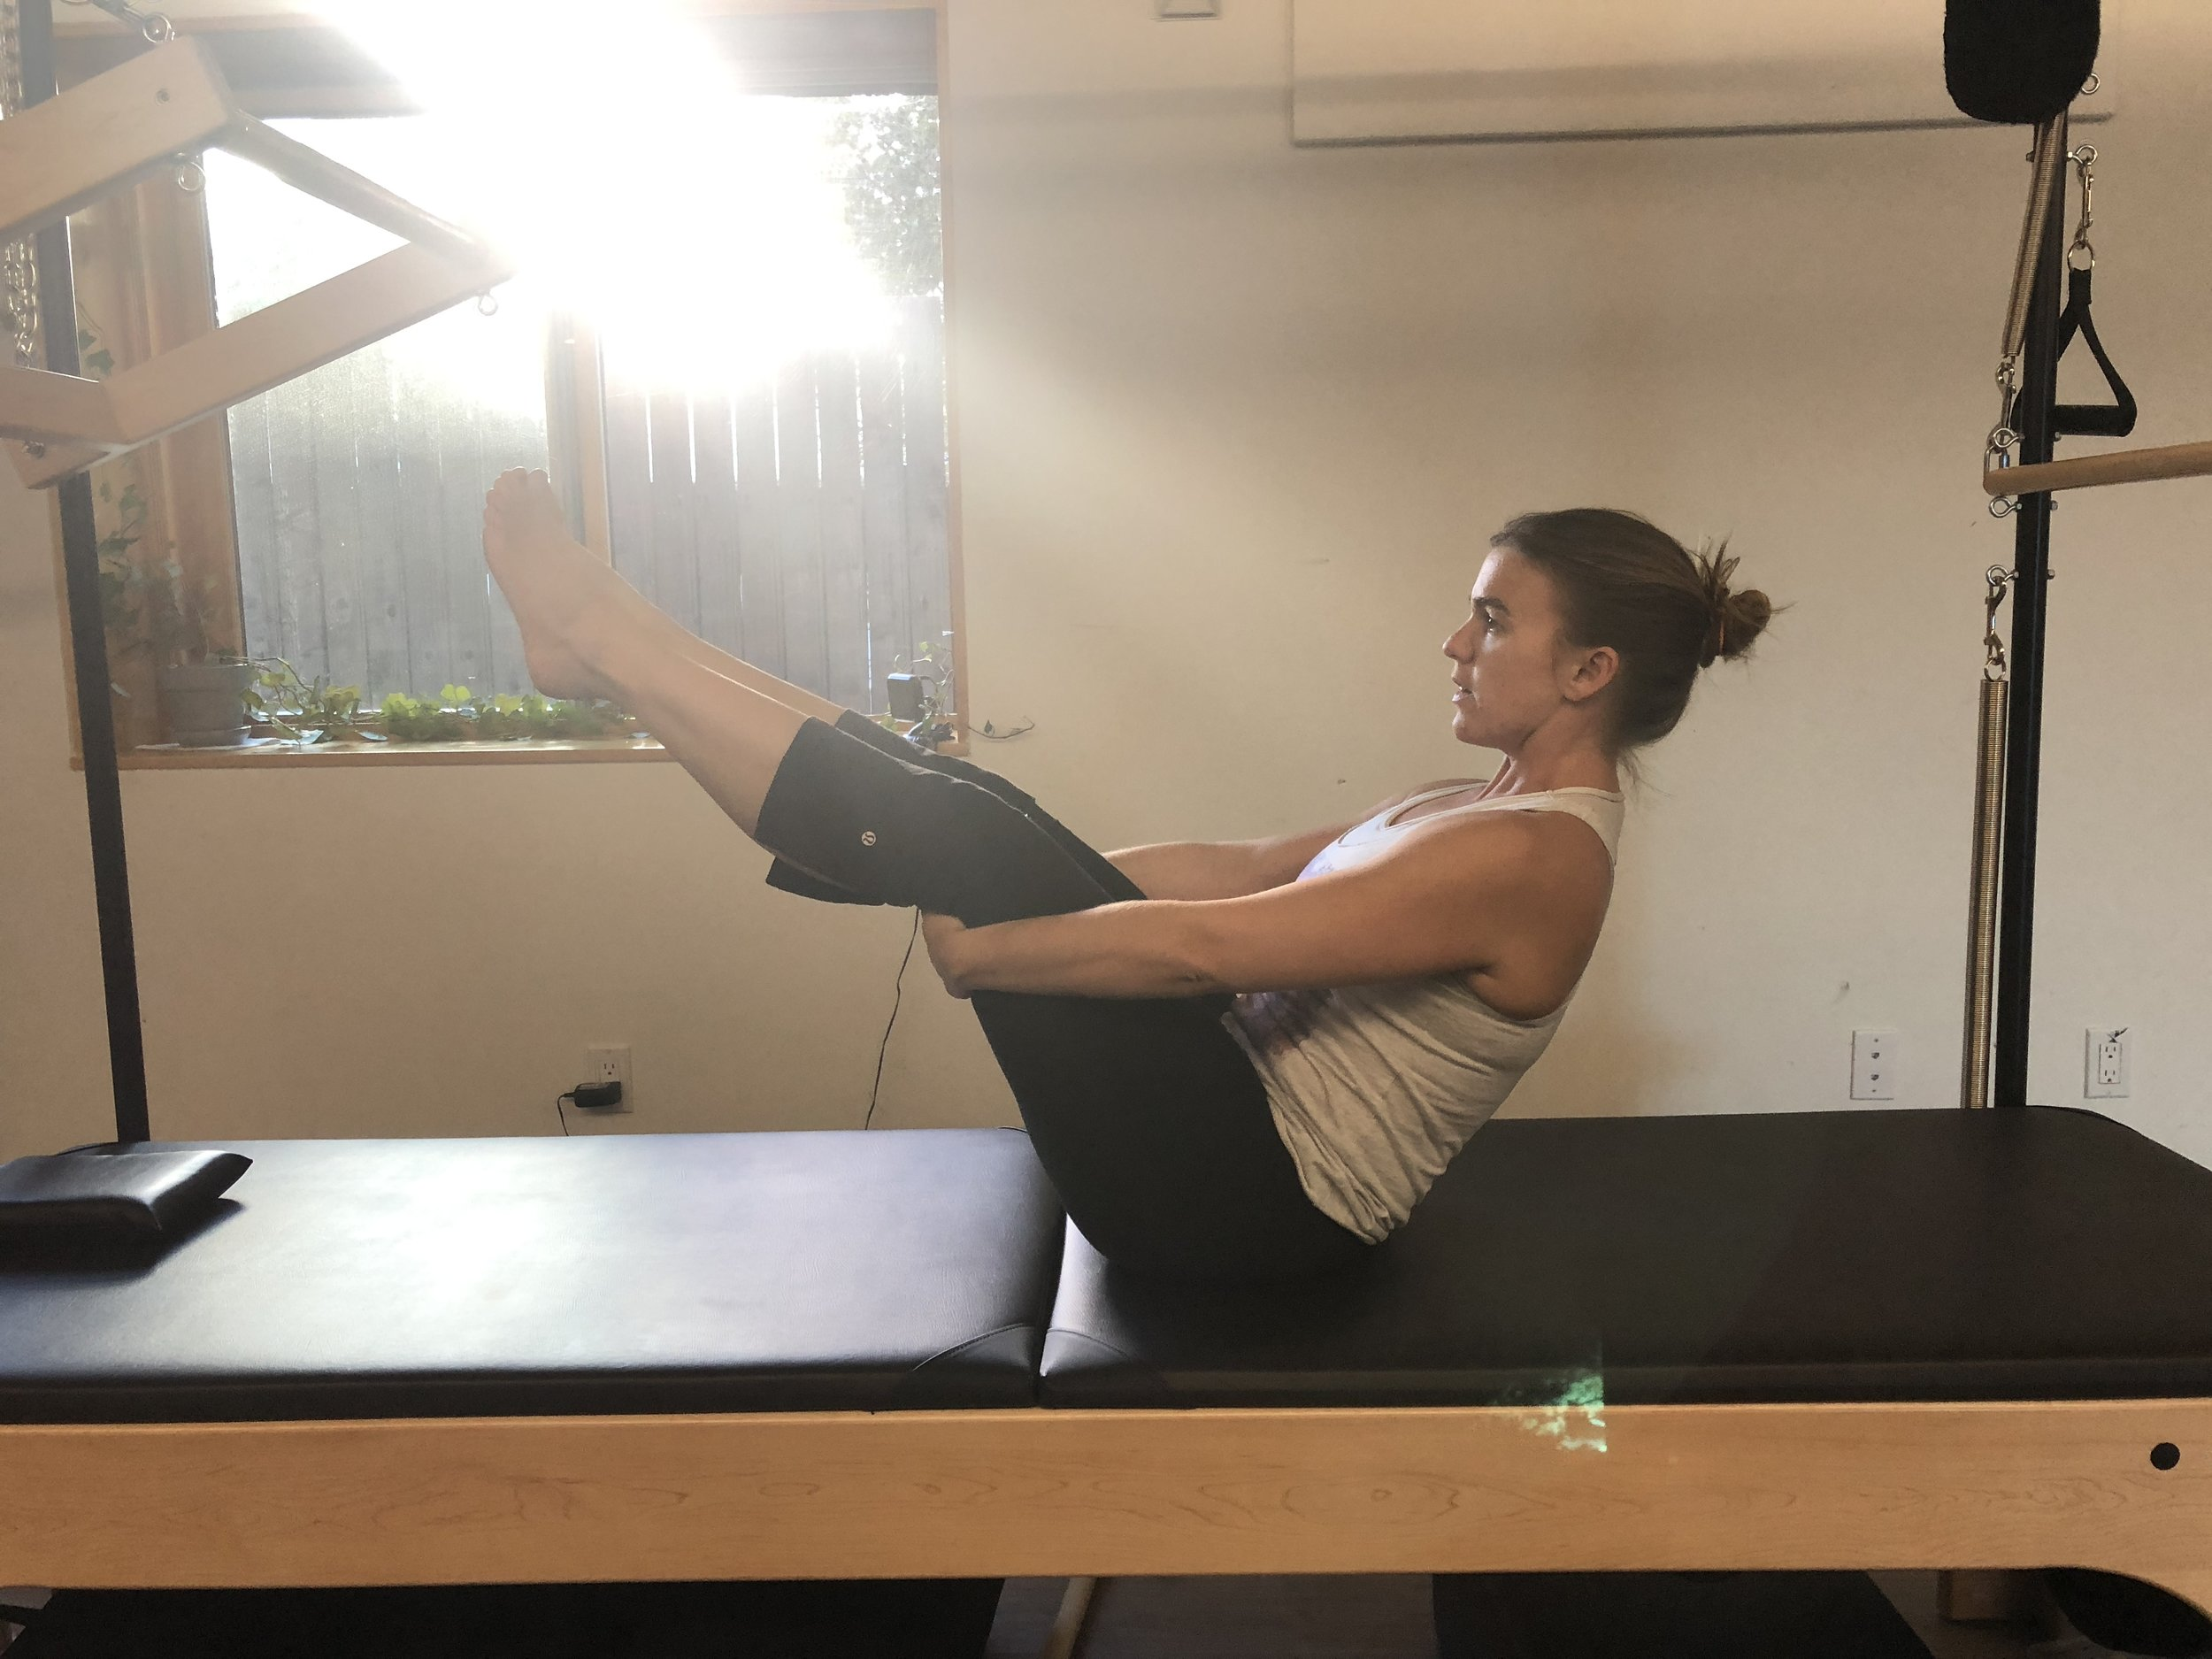 Double Leg Roll Up - Similar to the single leg roll up but with both legs in the air (you can also use a towel around the feet or keep the knees bent if you have tight hamstrings), again try to balance half way up.